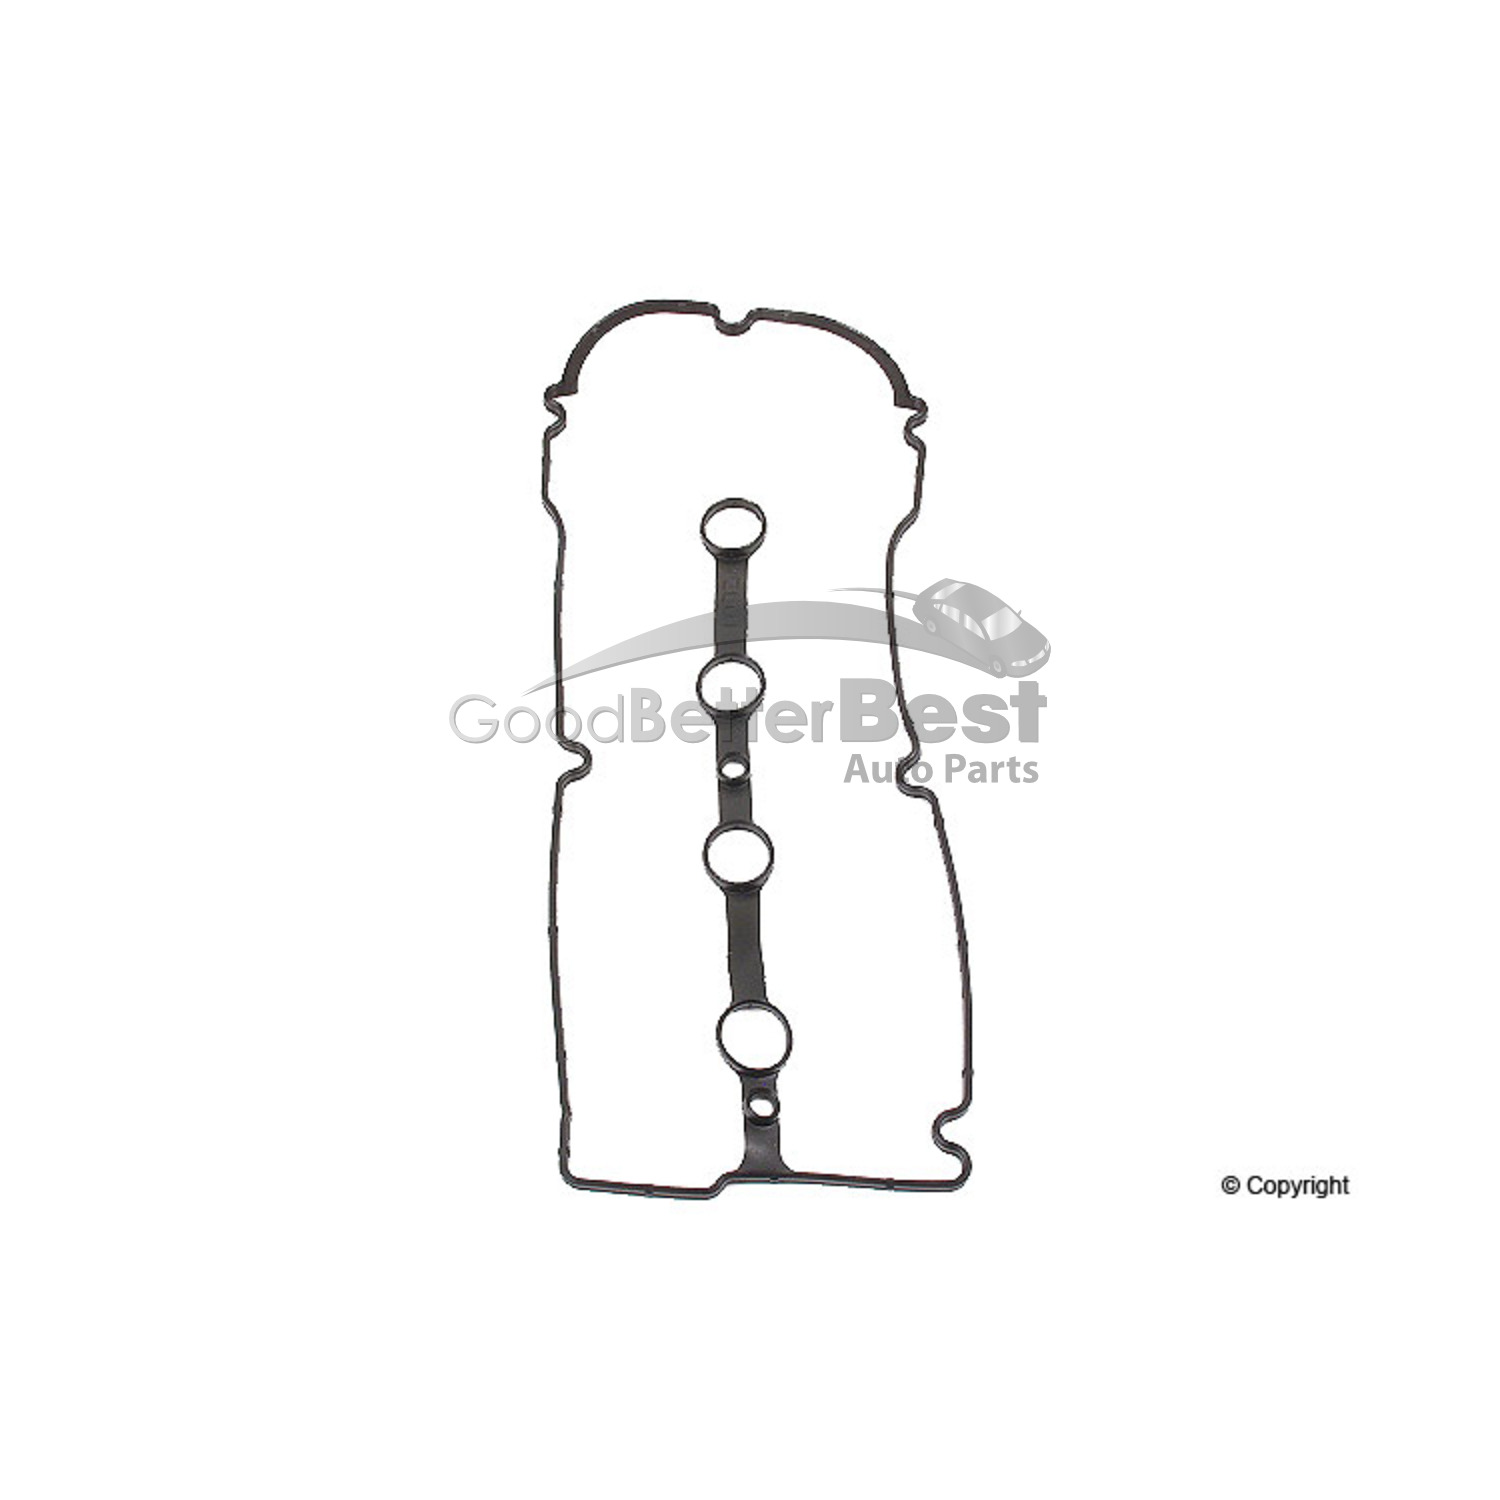 hight resolution of details about new nippon reinz engine valve cover gasket zl0110235 for mazda protege